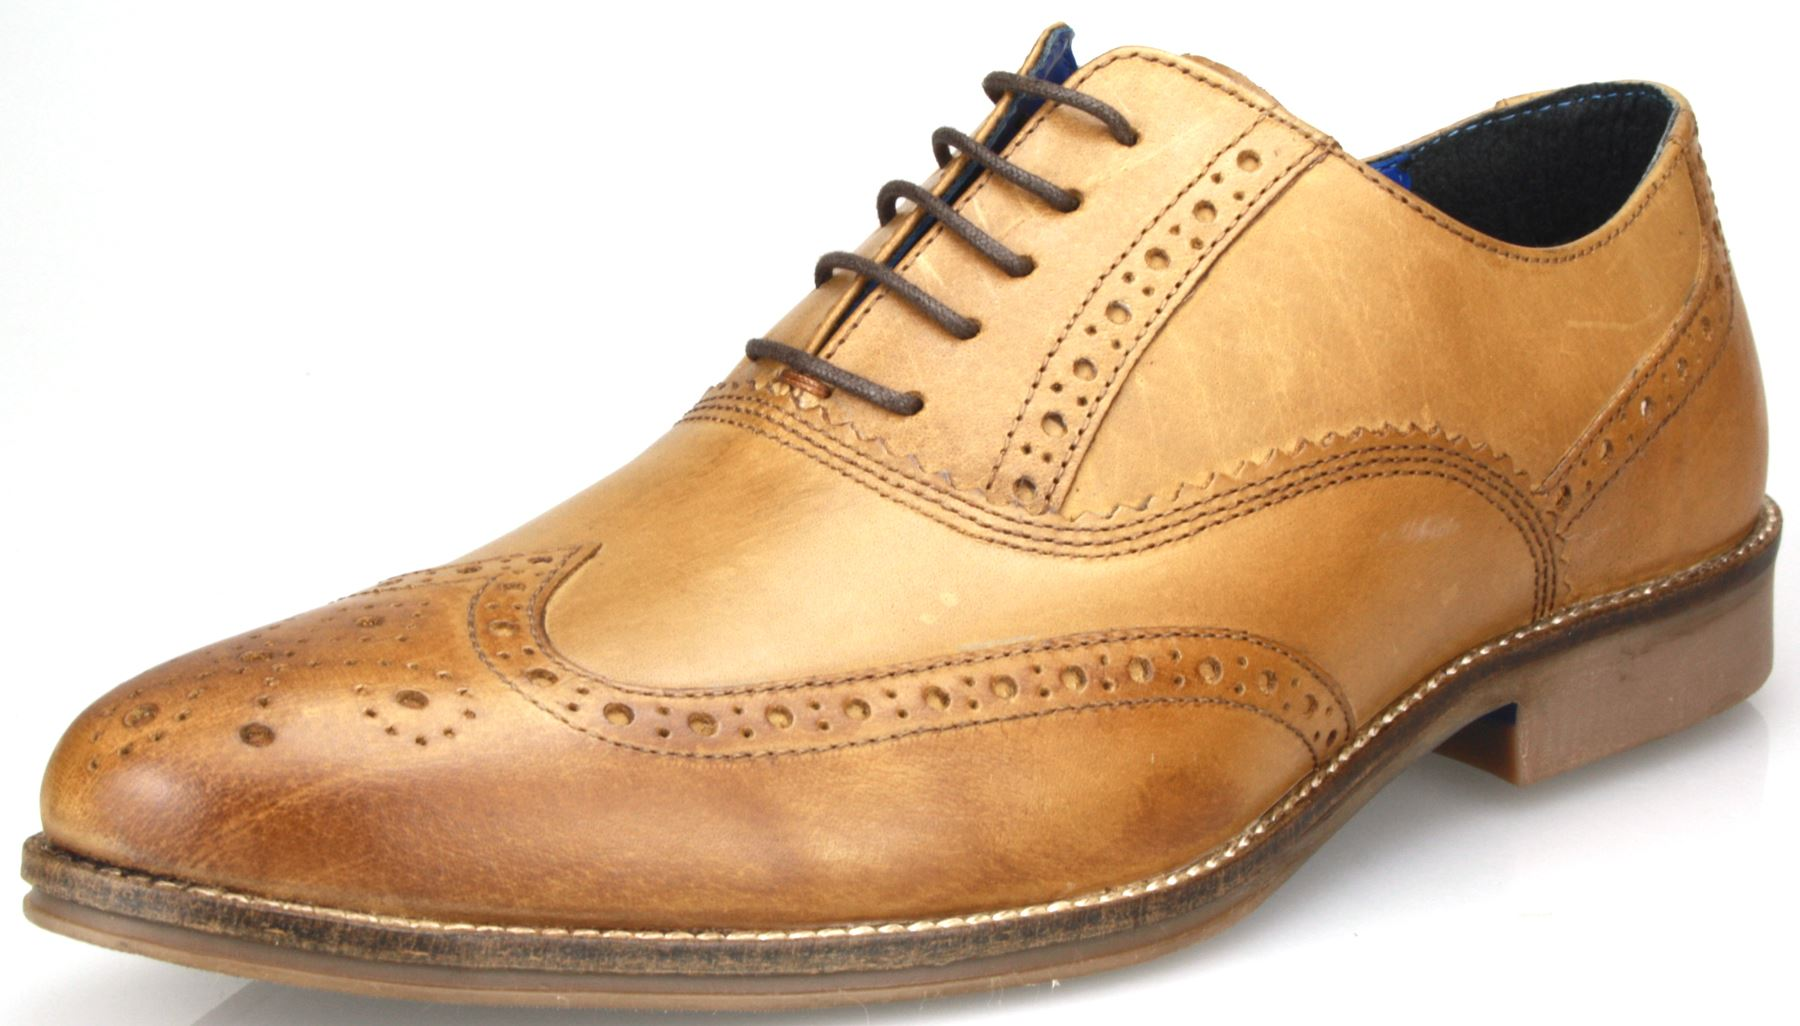 Tan Brogue Shoe Sale